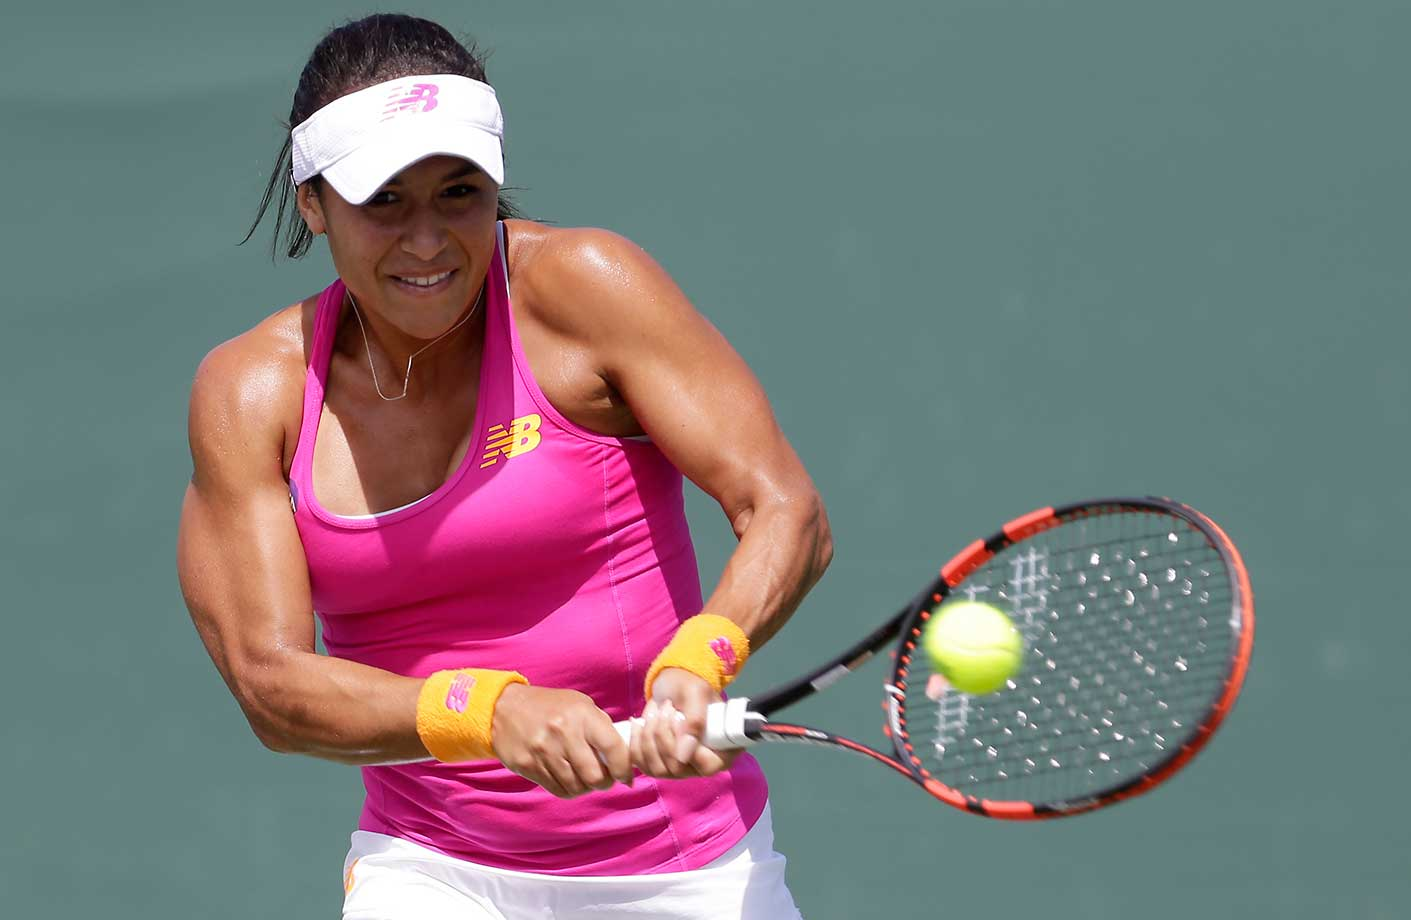 Heather Watson of Great Britain returns to Petra Cetkovska of the Czech Republic at the Miami Open.